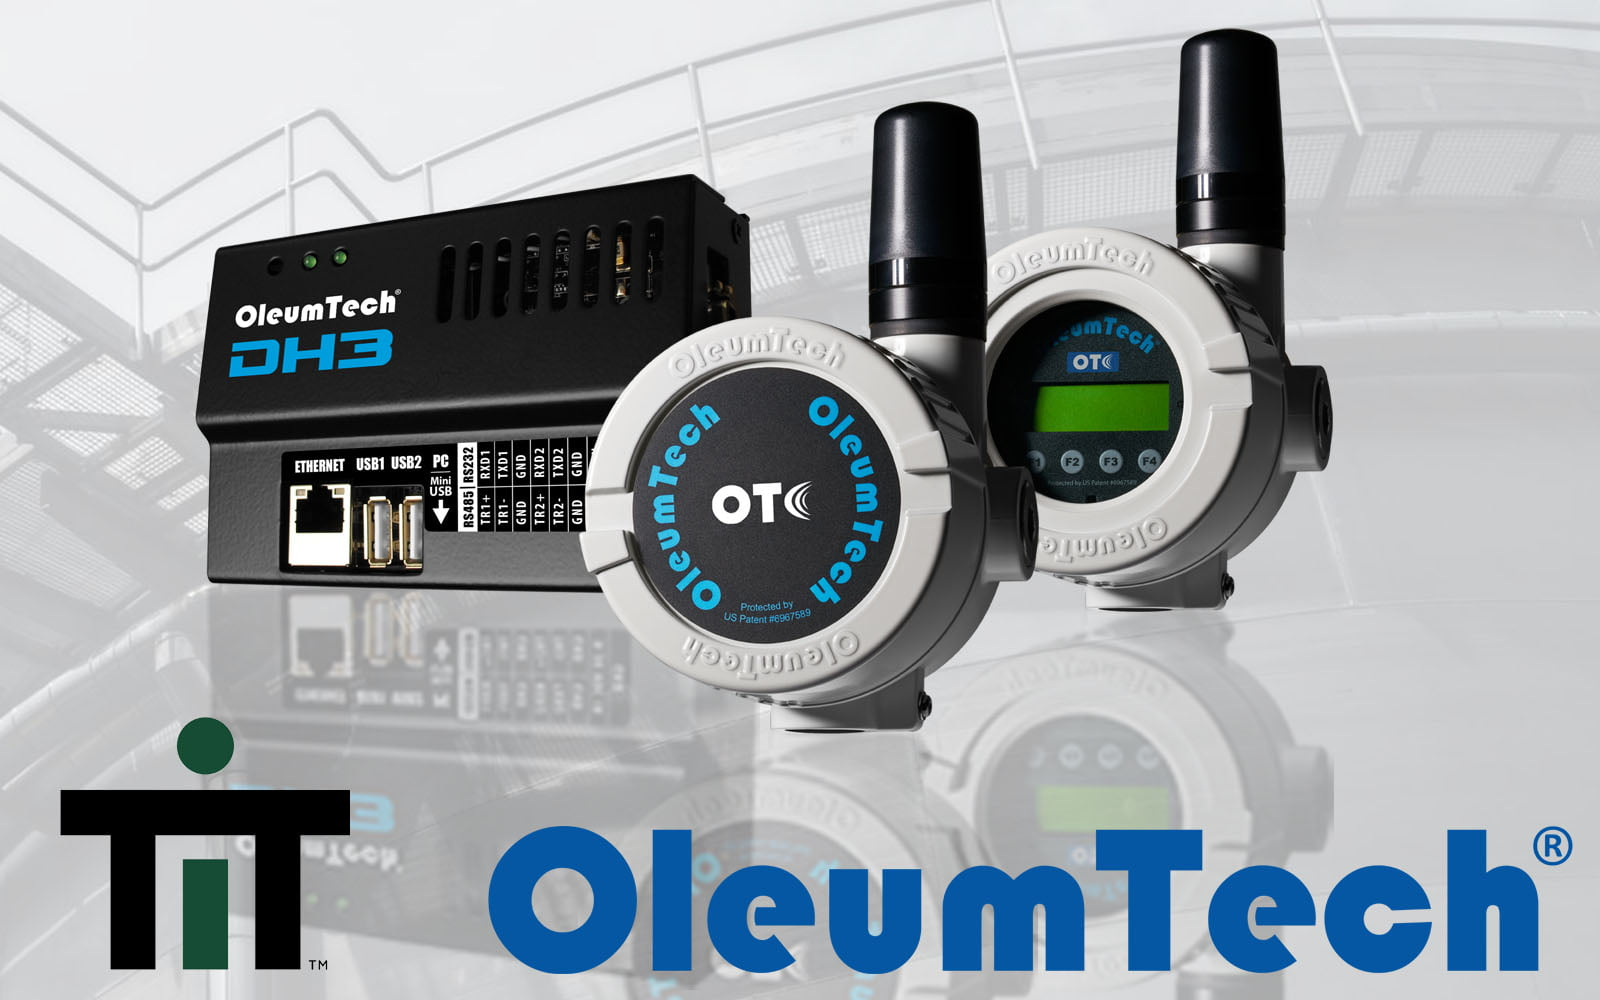 OleumTech Increases Its Presence in Africa with Tranter IT Partnership